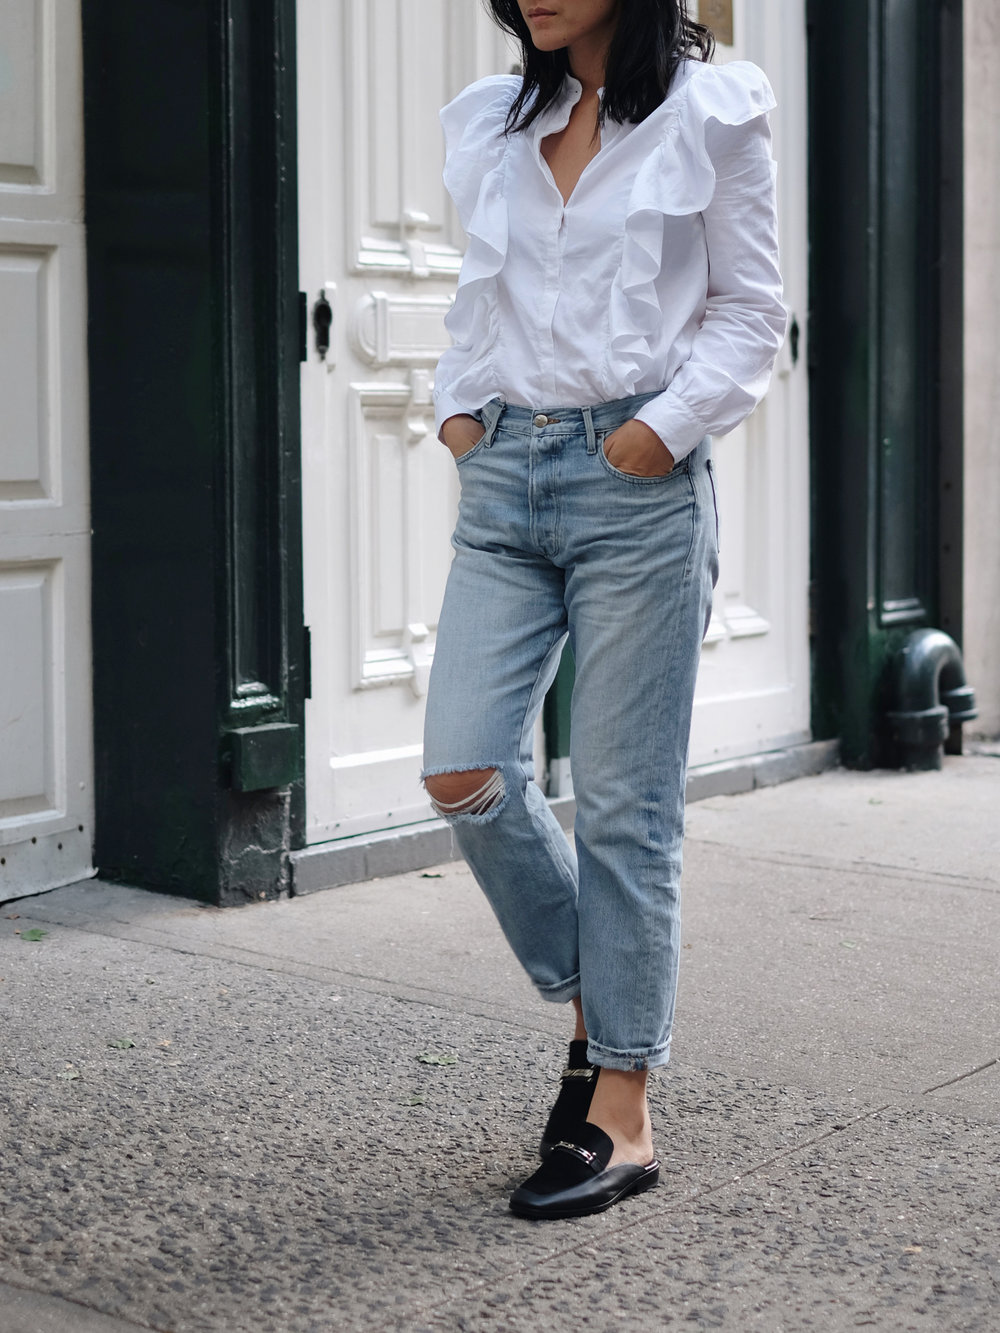 H&M Blouse / FRAME DENIM Jeans / CHANEL Bag / NEWBARK Mules